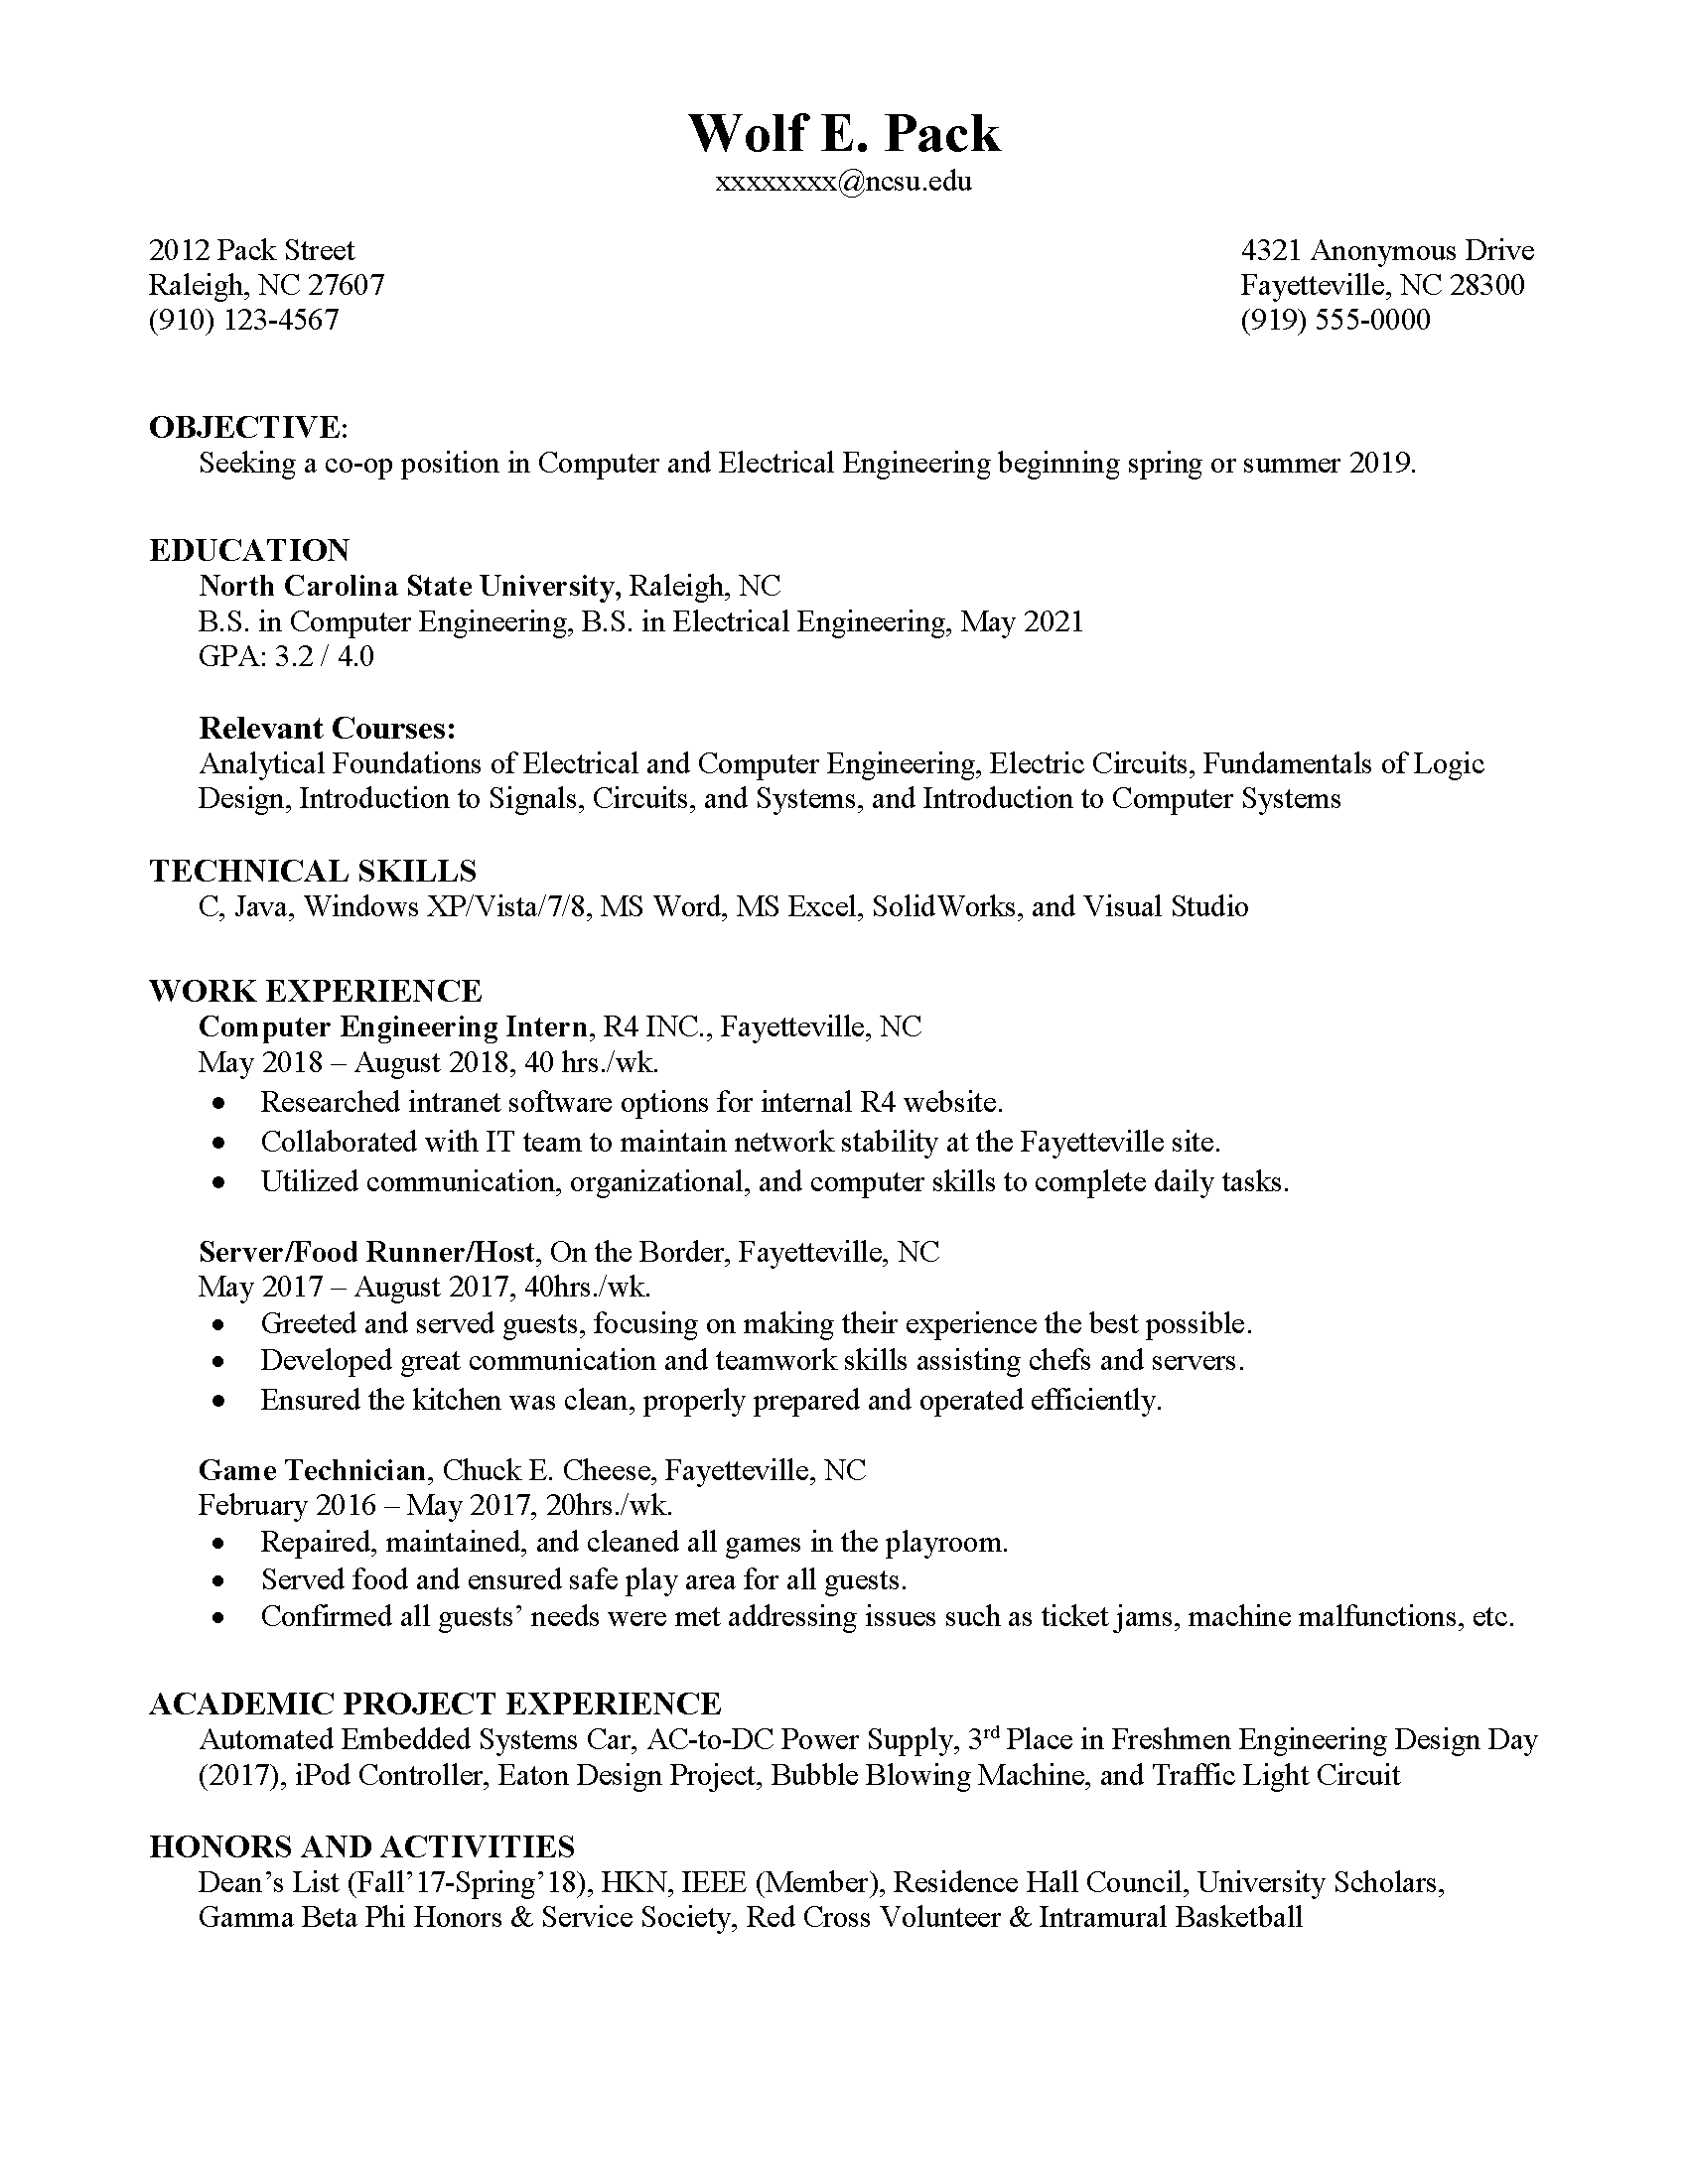 resume professional services